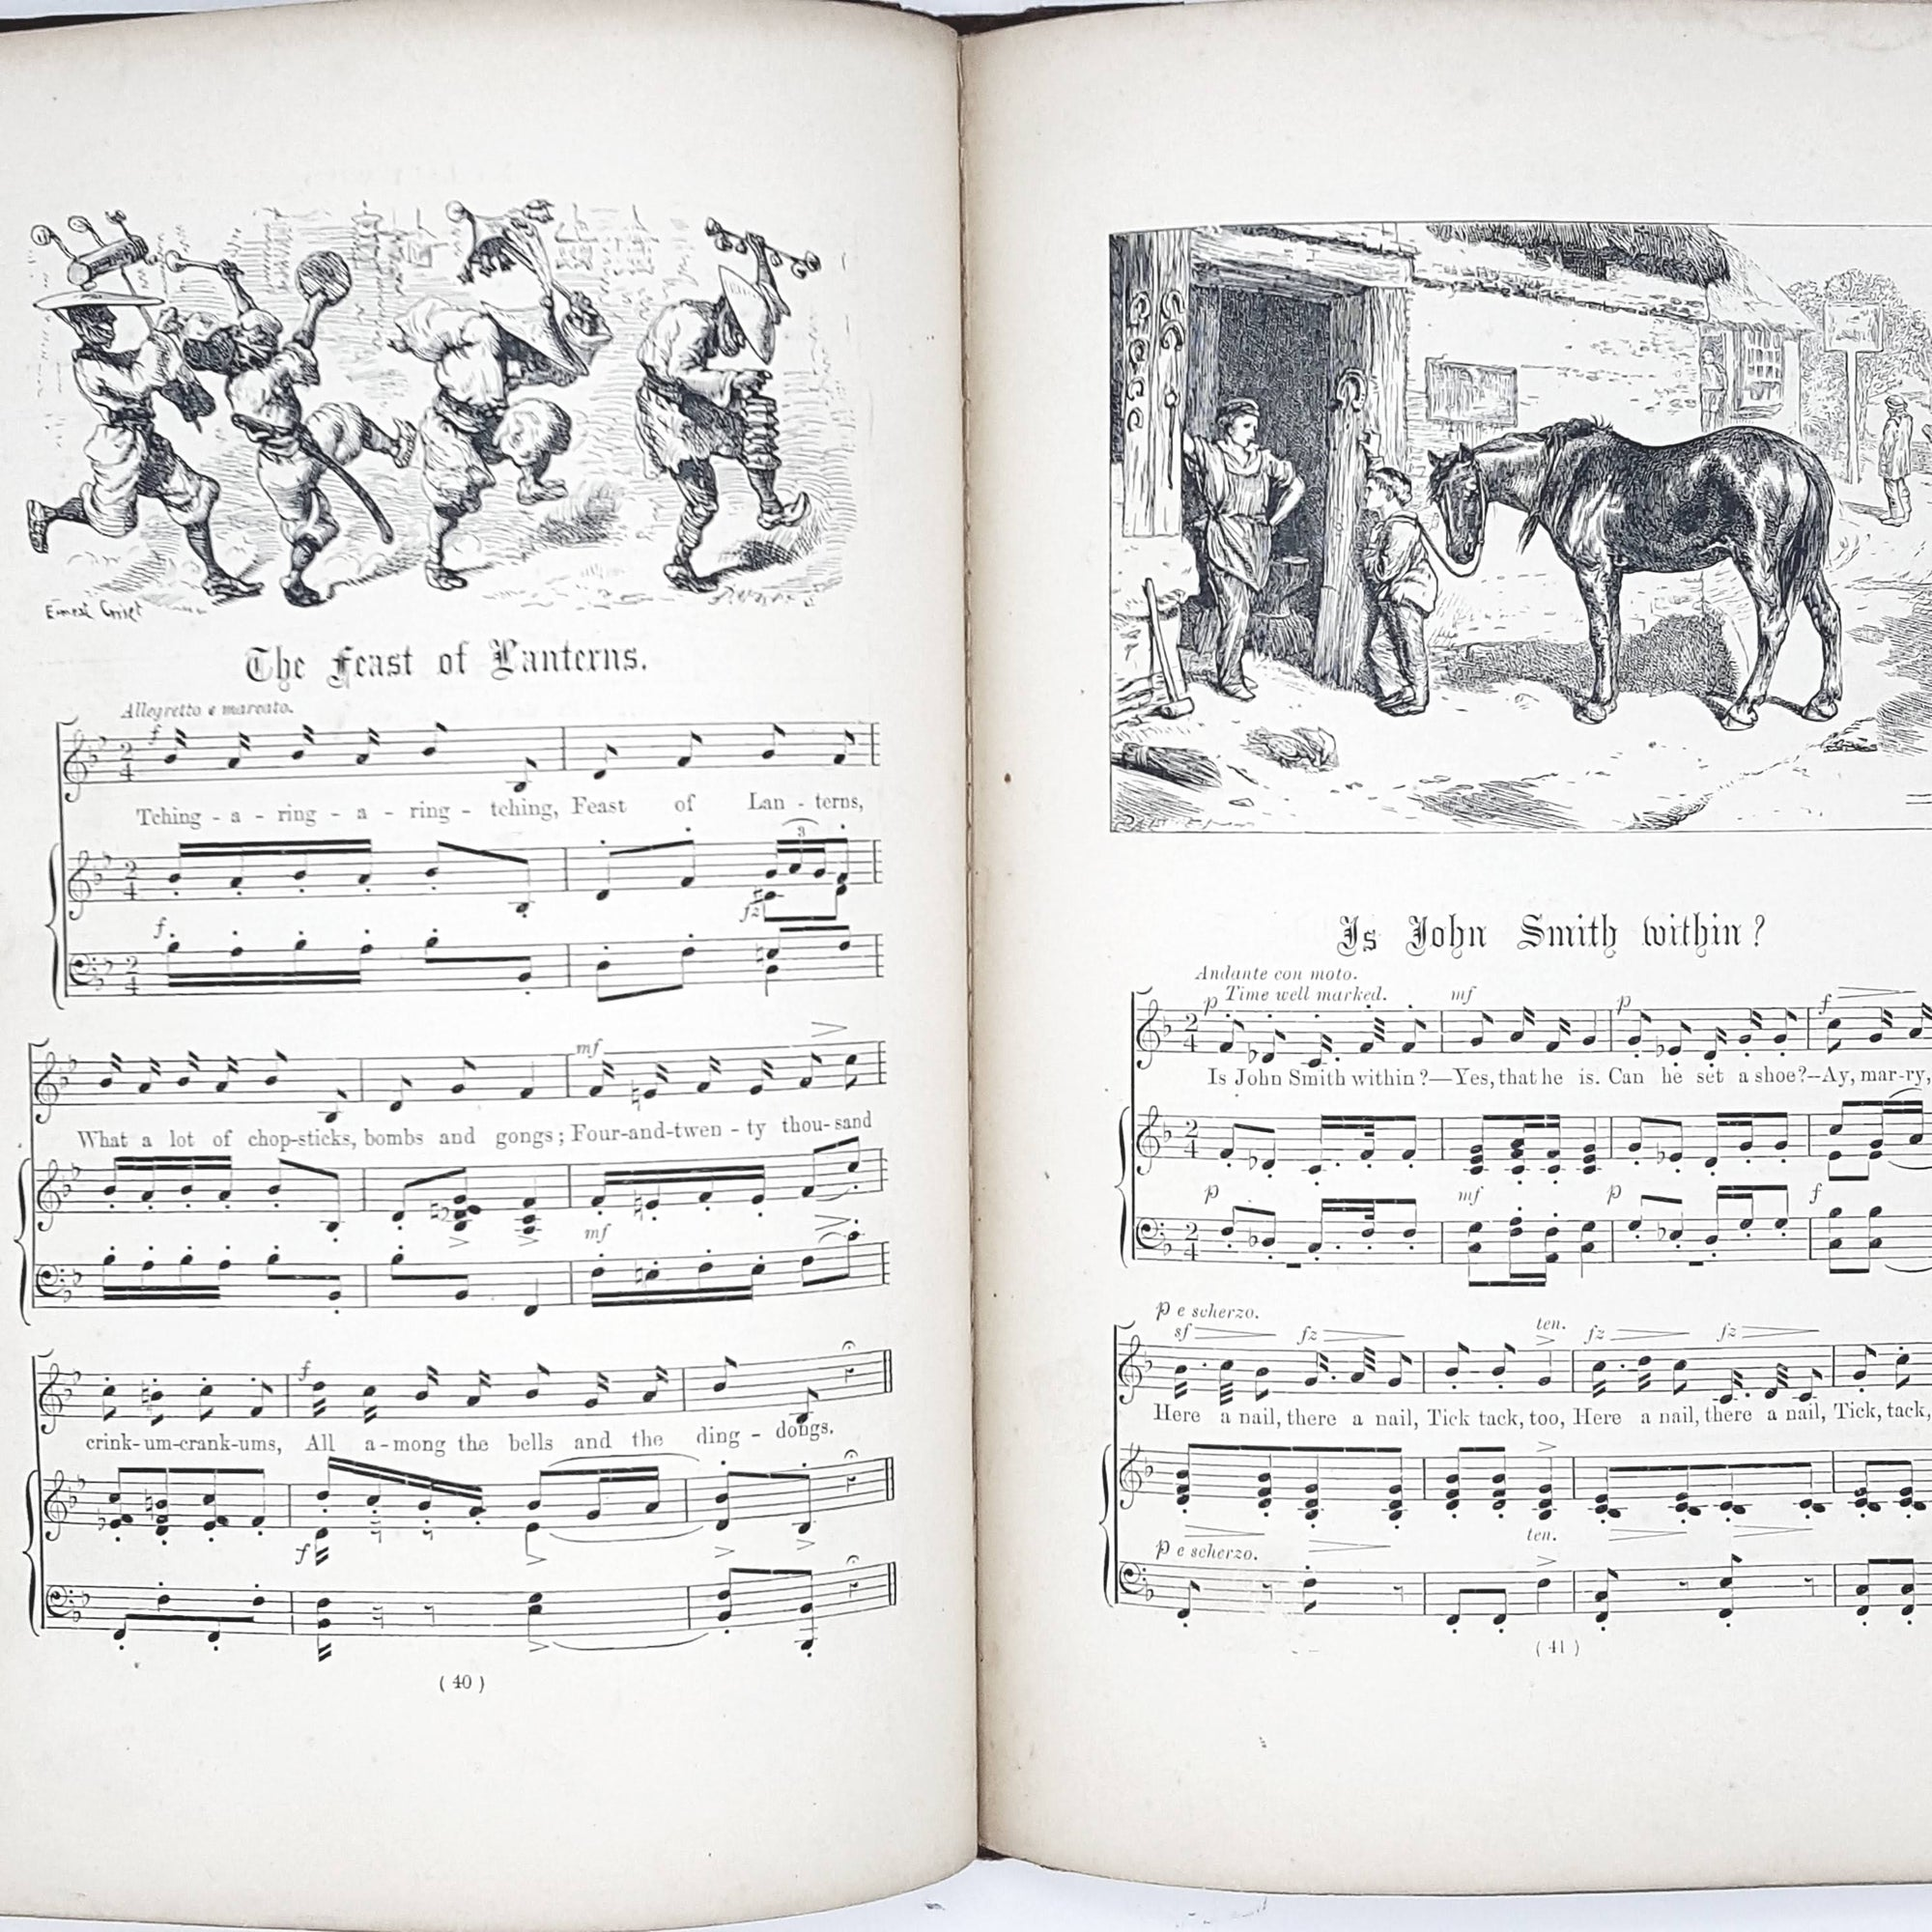 National Nursery Rhymes Set to Music by J. W. Elliott